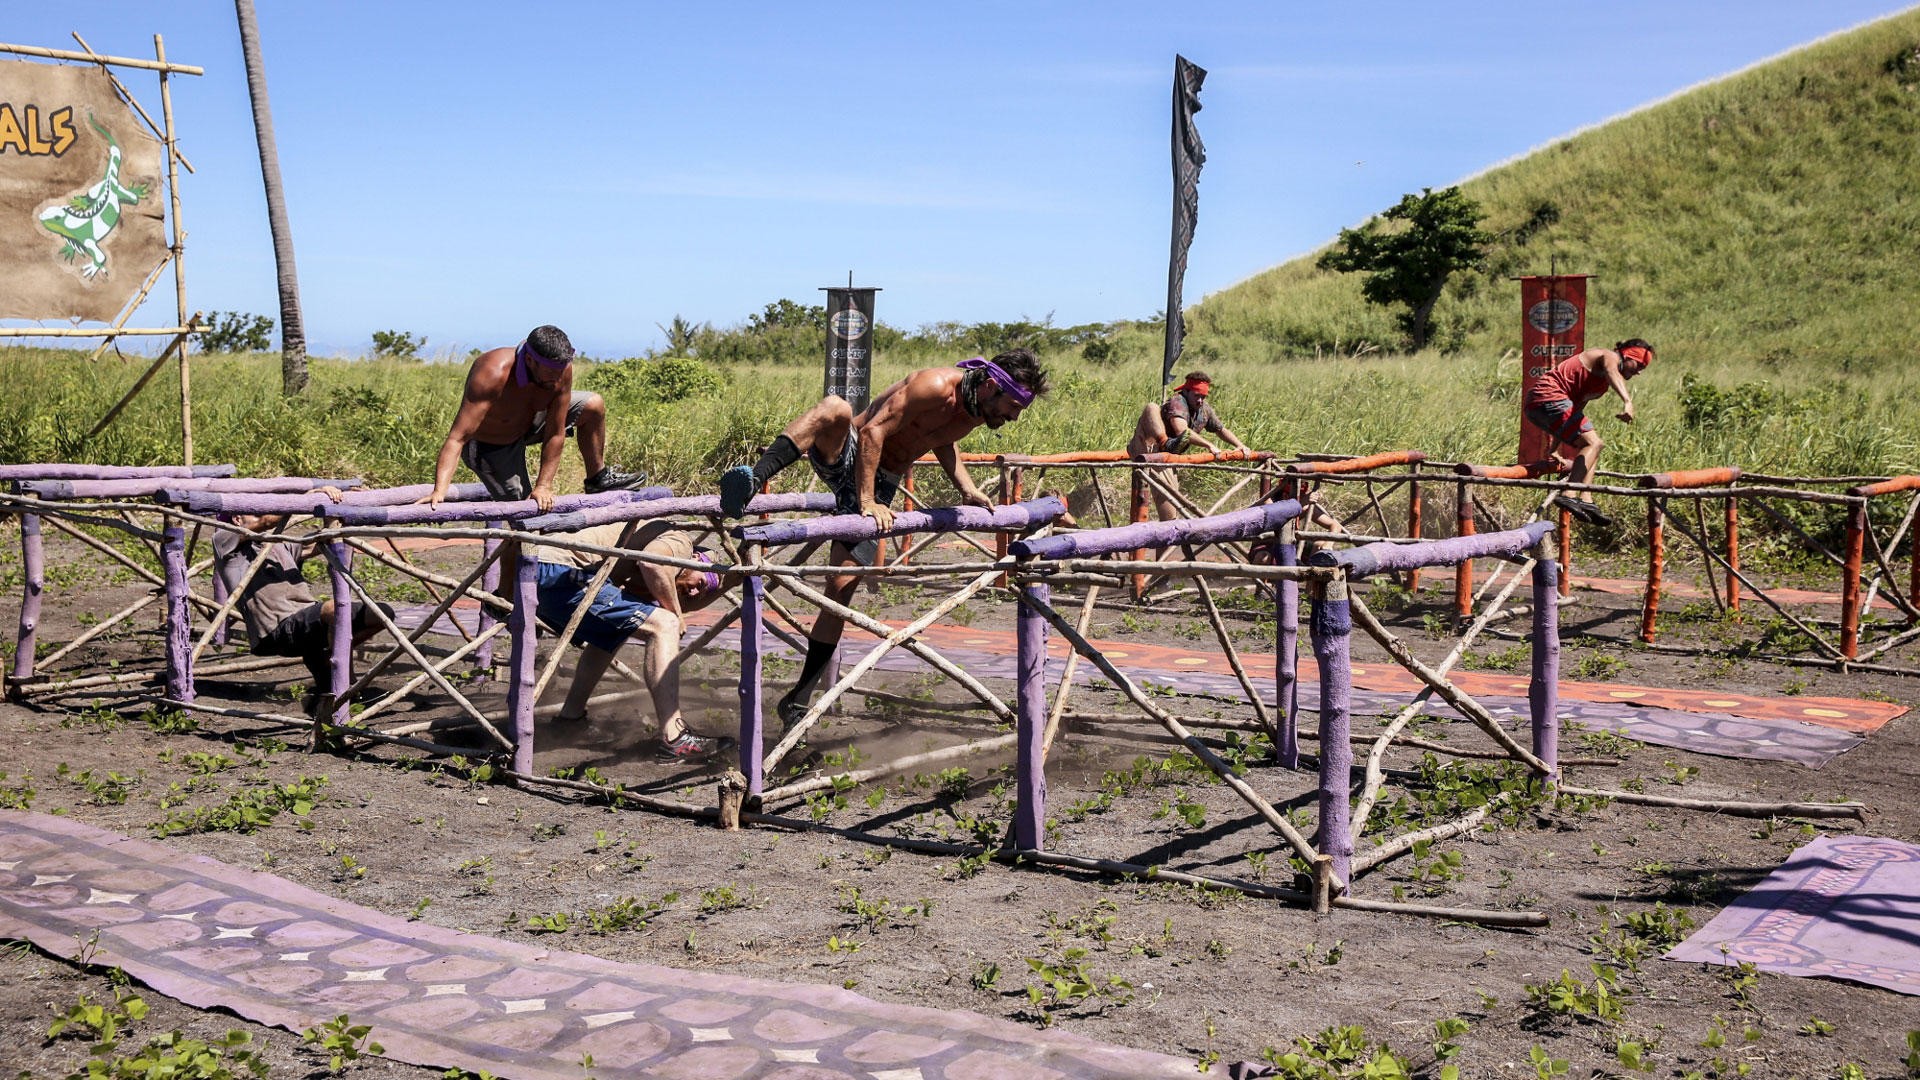 Castaways must weave around hurdles in this obstacle course.